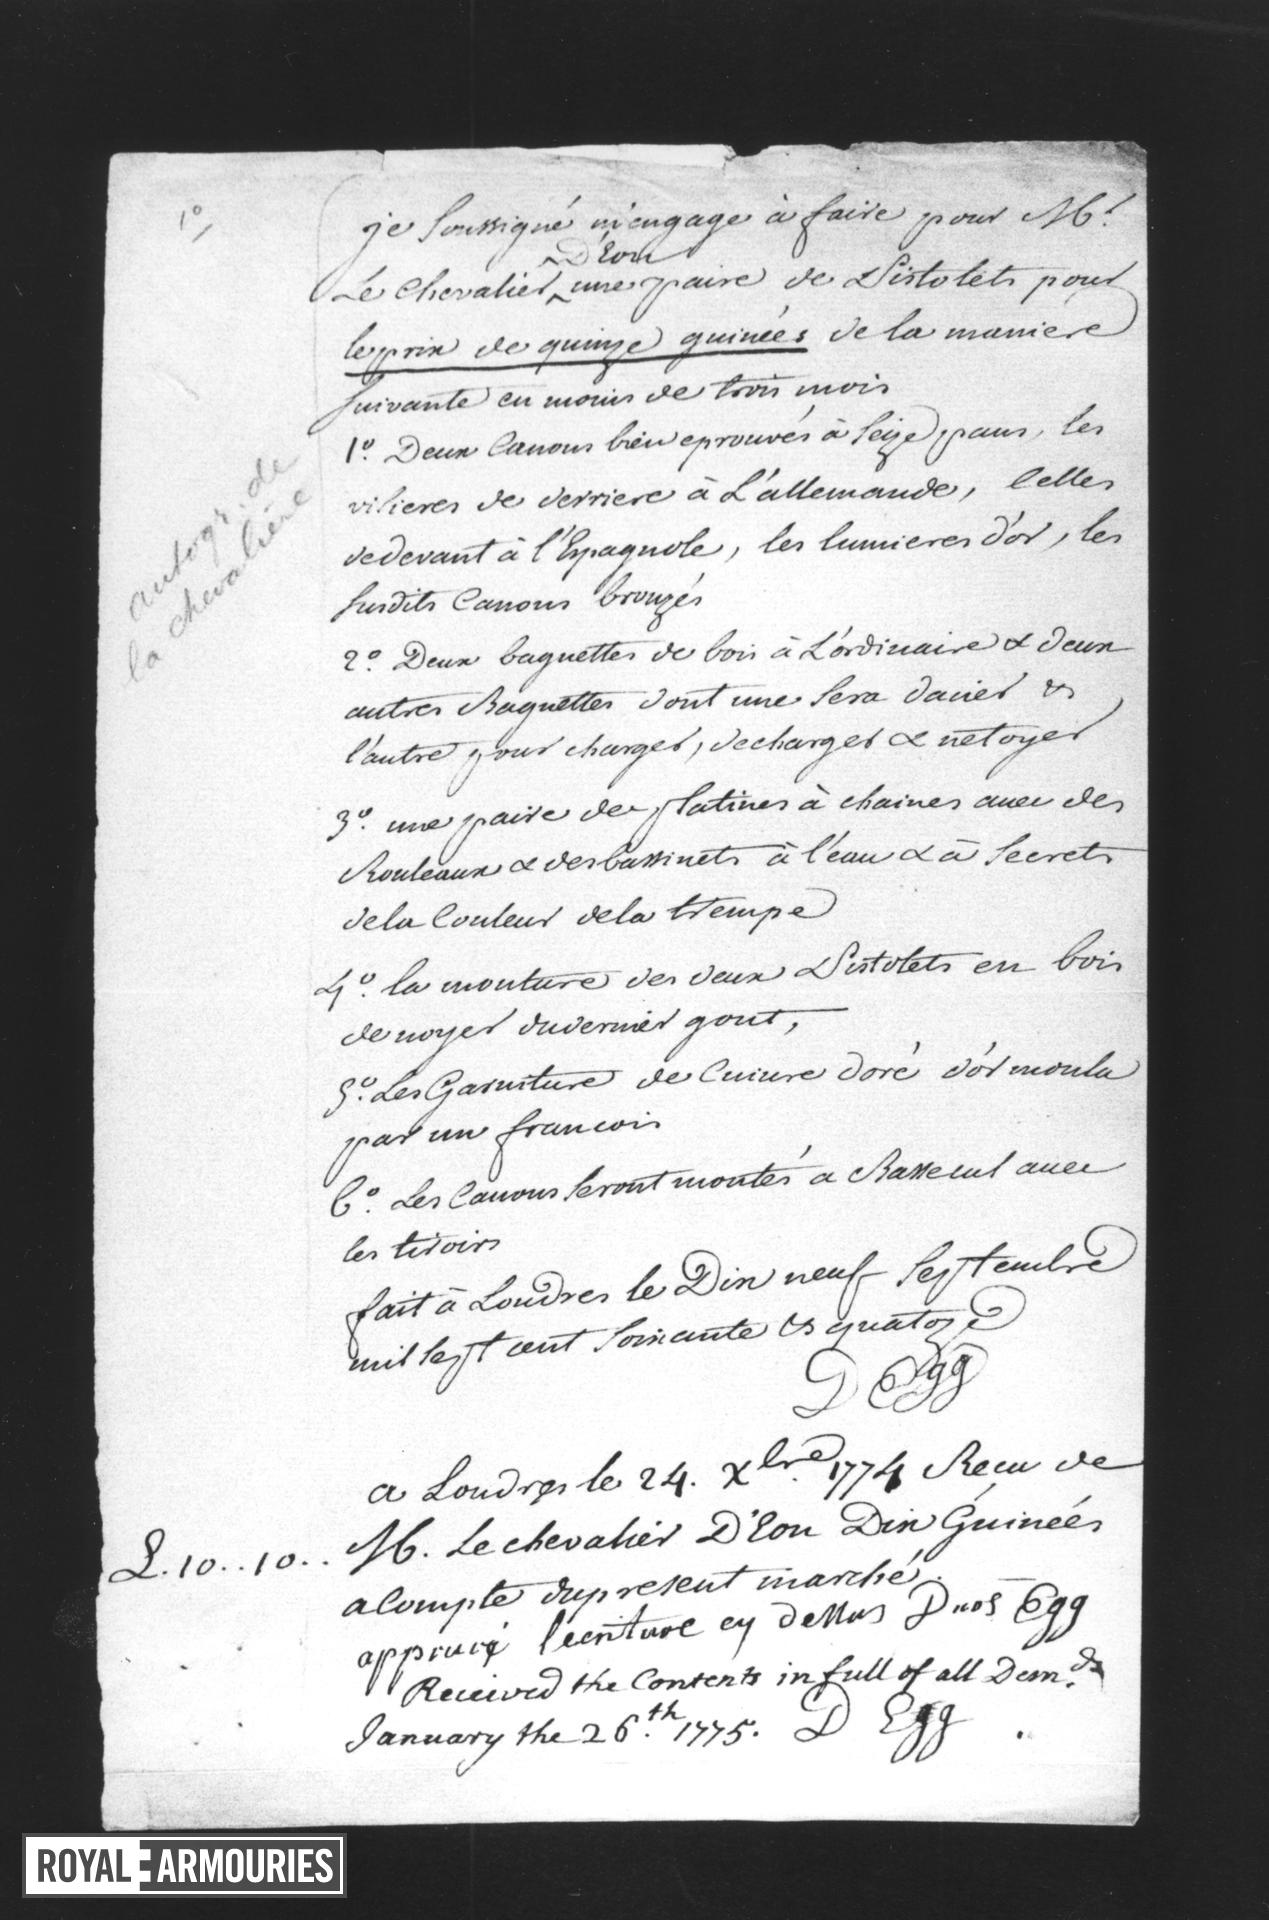 Contract, signed D. Egg, and dated, undertaking to make a pair of pistols for the Chevalier d'Eon, for a price of 15 guineas, giving a detailed specification